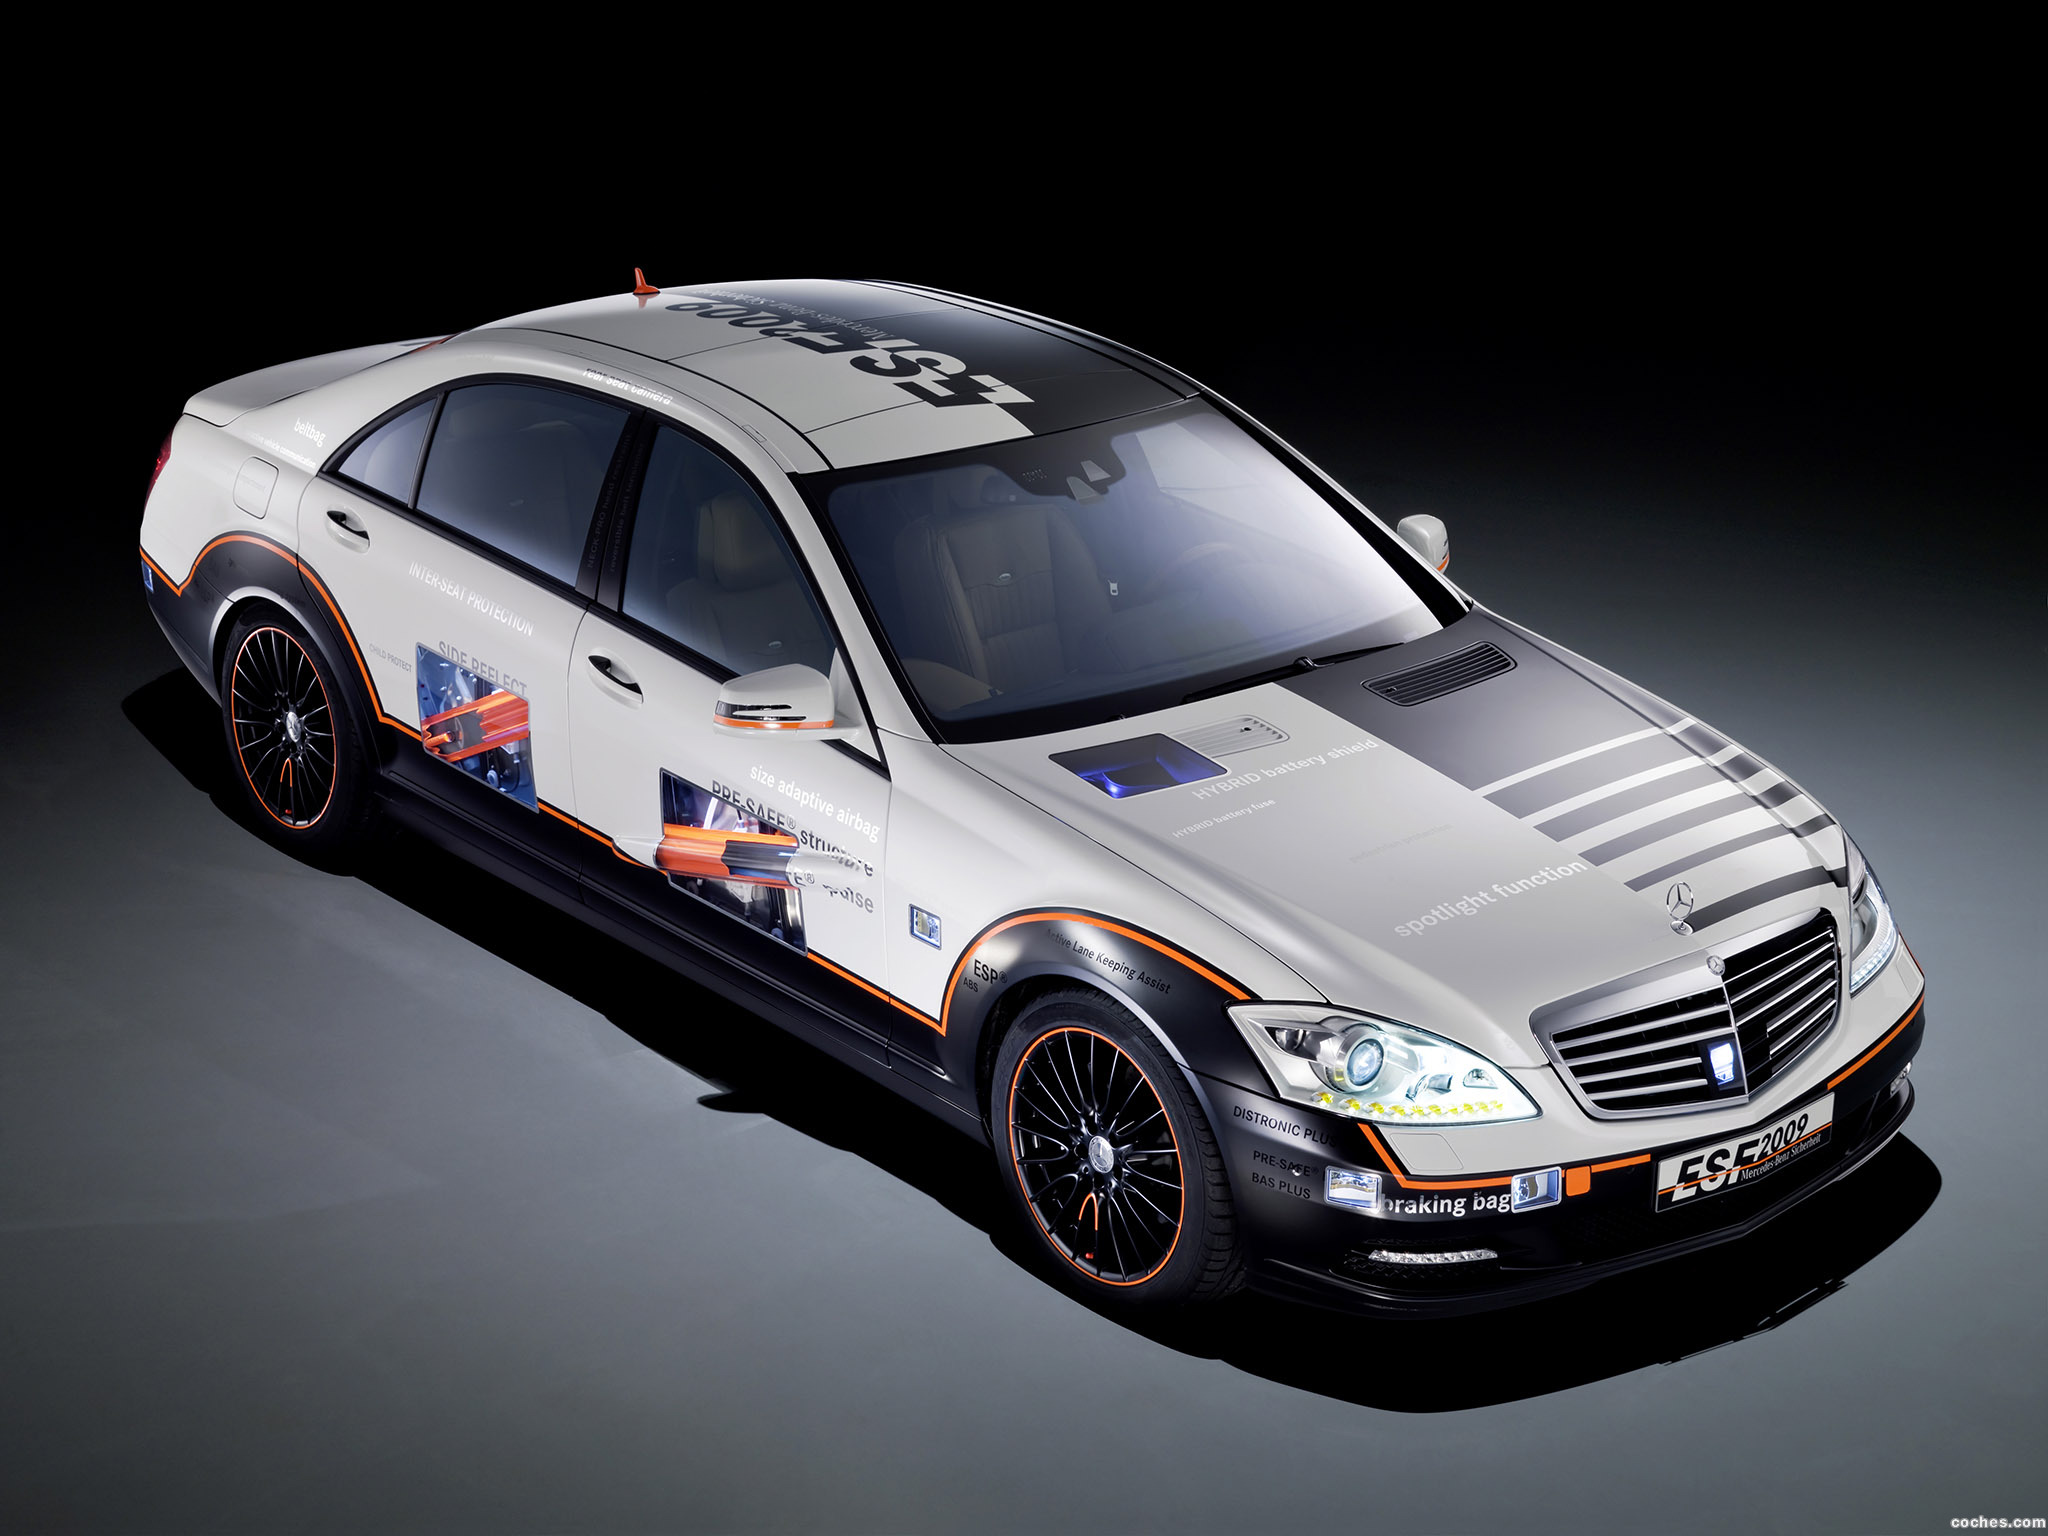 mercedes_s-esf-experimental-safety-vehicle_r6.jpg